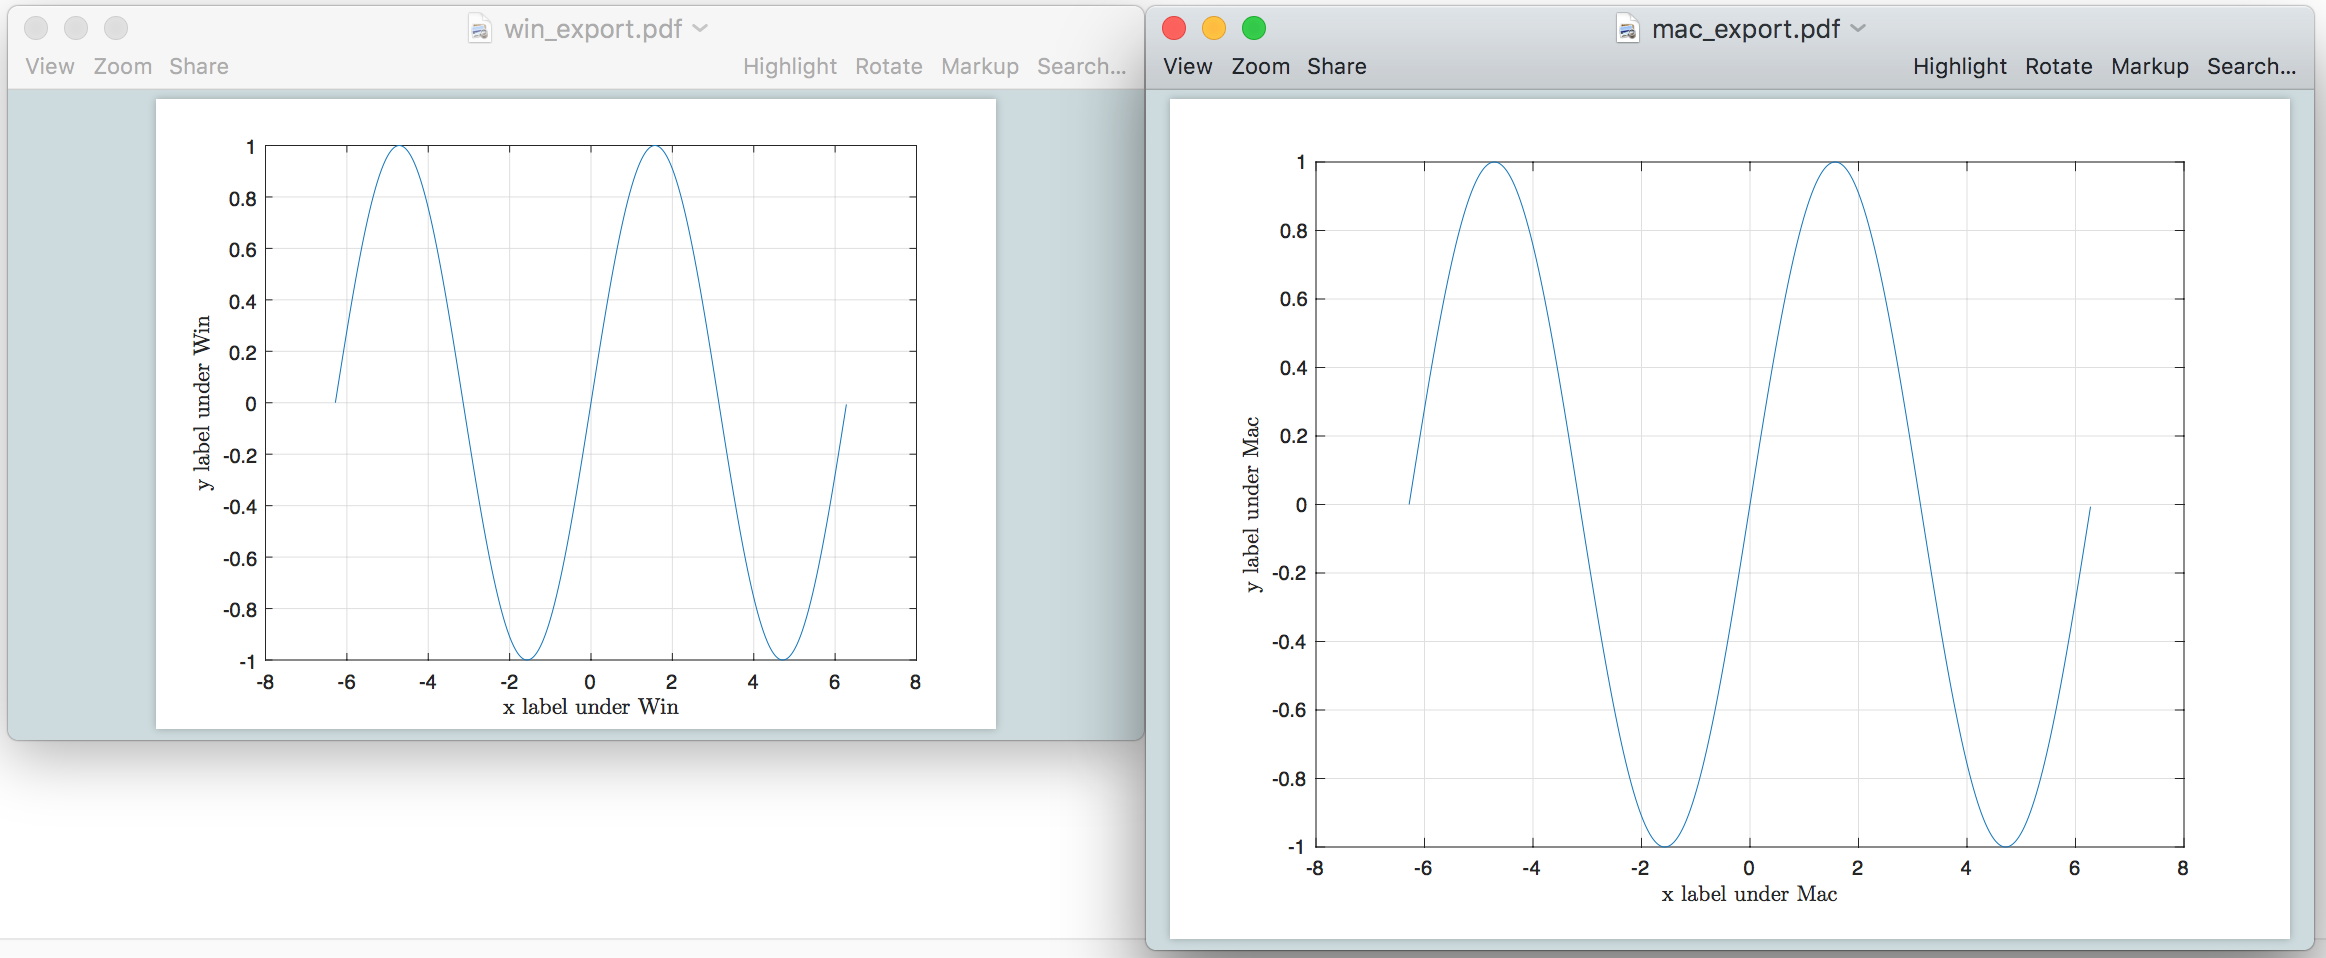 Apparently The Mac Matlab Produces A Bigger Eps Picture Than Win